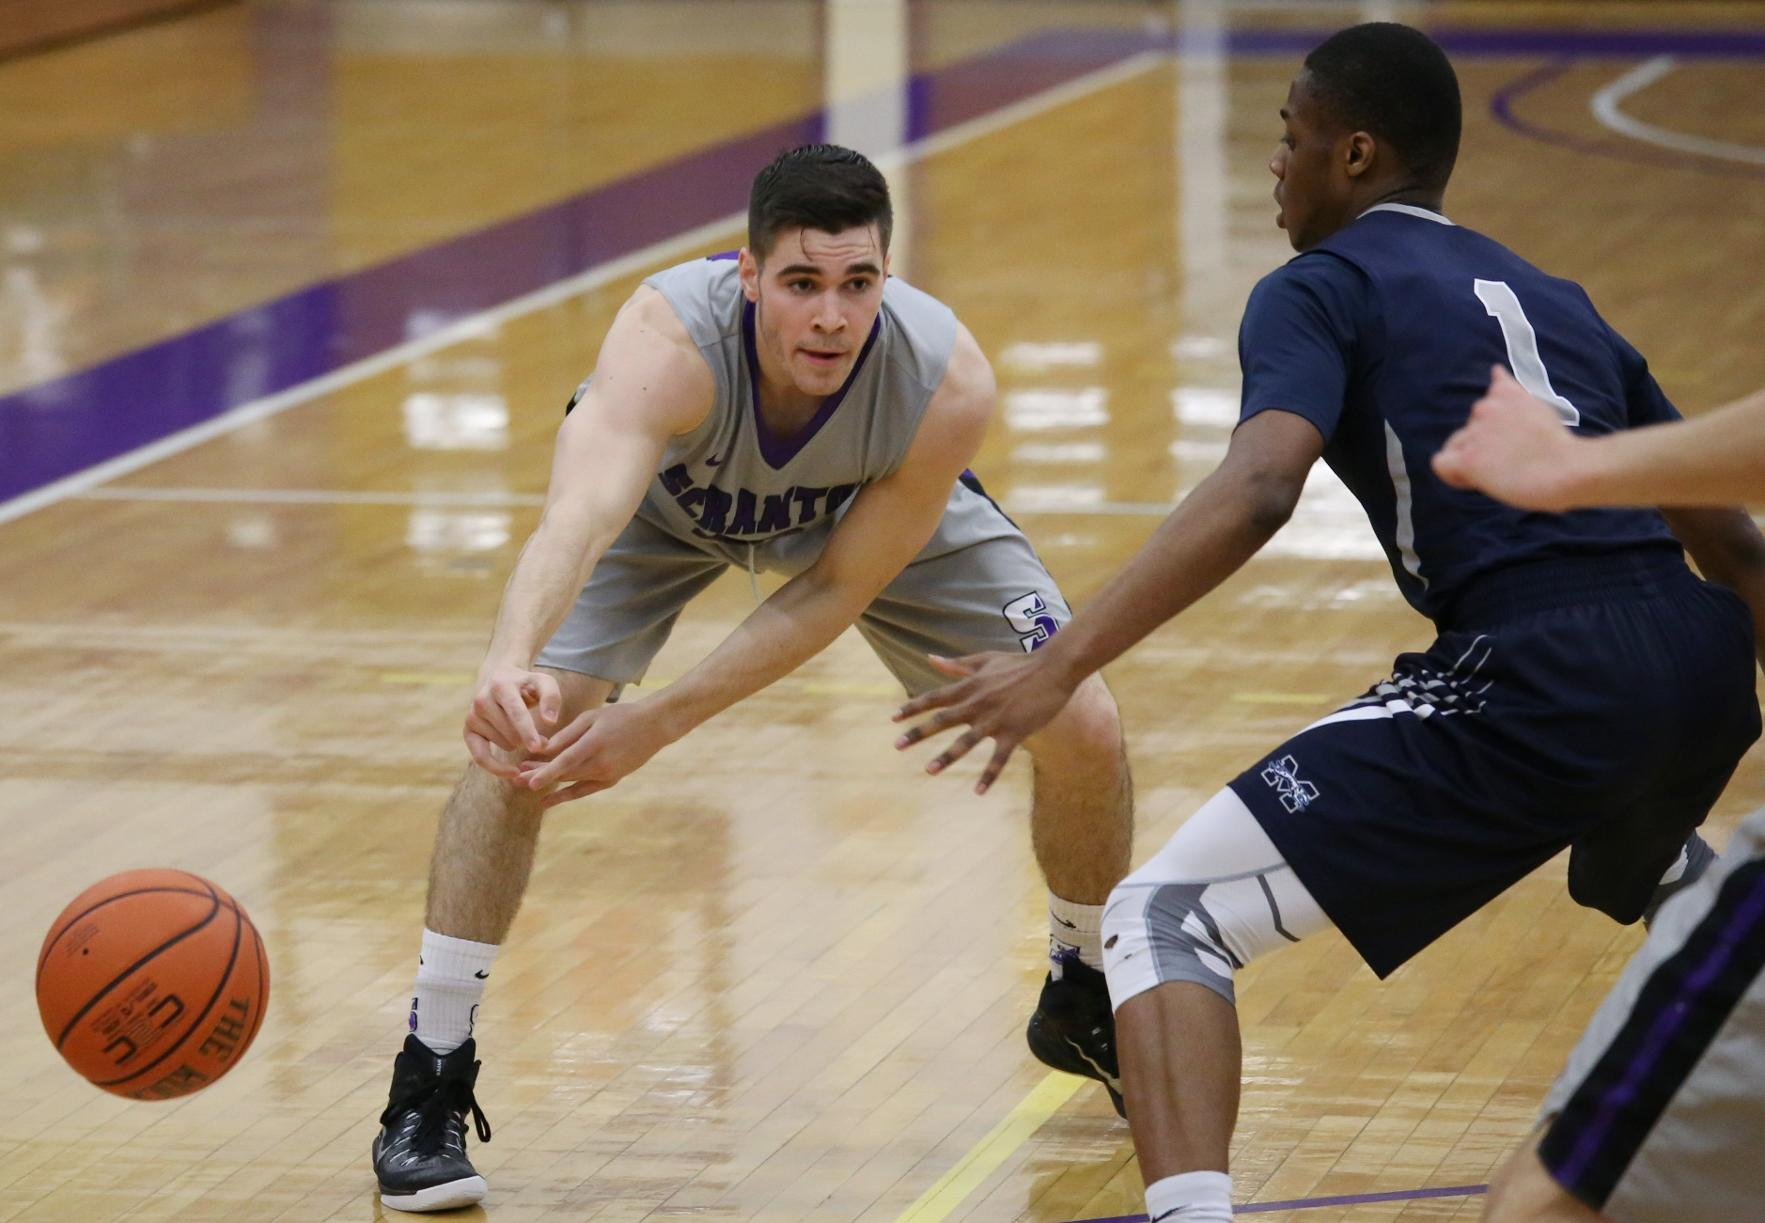 moravia guys Jordan young joins moravian men's basketball coaching staff  moravian  welcomes its 2018-19 student-athletes with annual saac kickoff august 30,  2018.